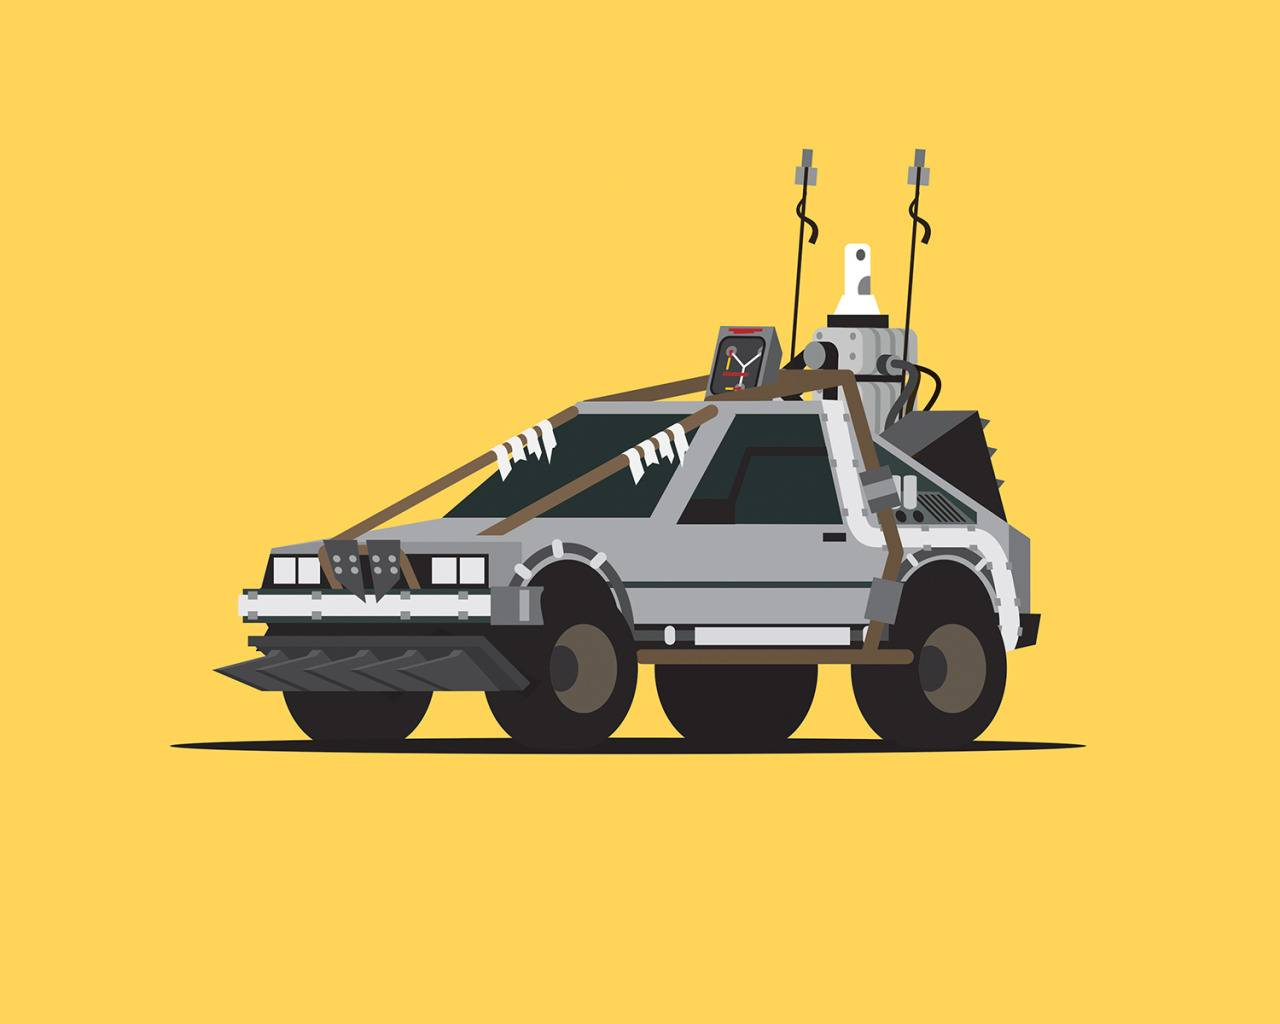 scott-park-sest-amuse-a-pimper-les-vehicules-du-cinema-facon-mad-max